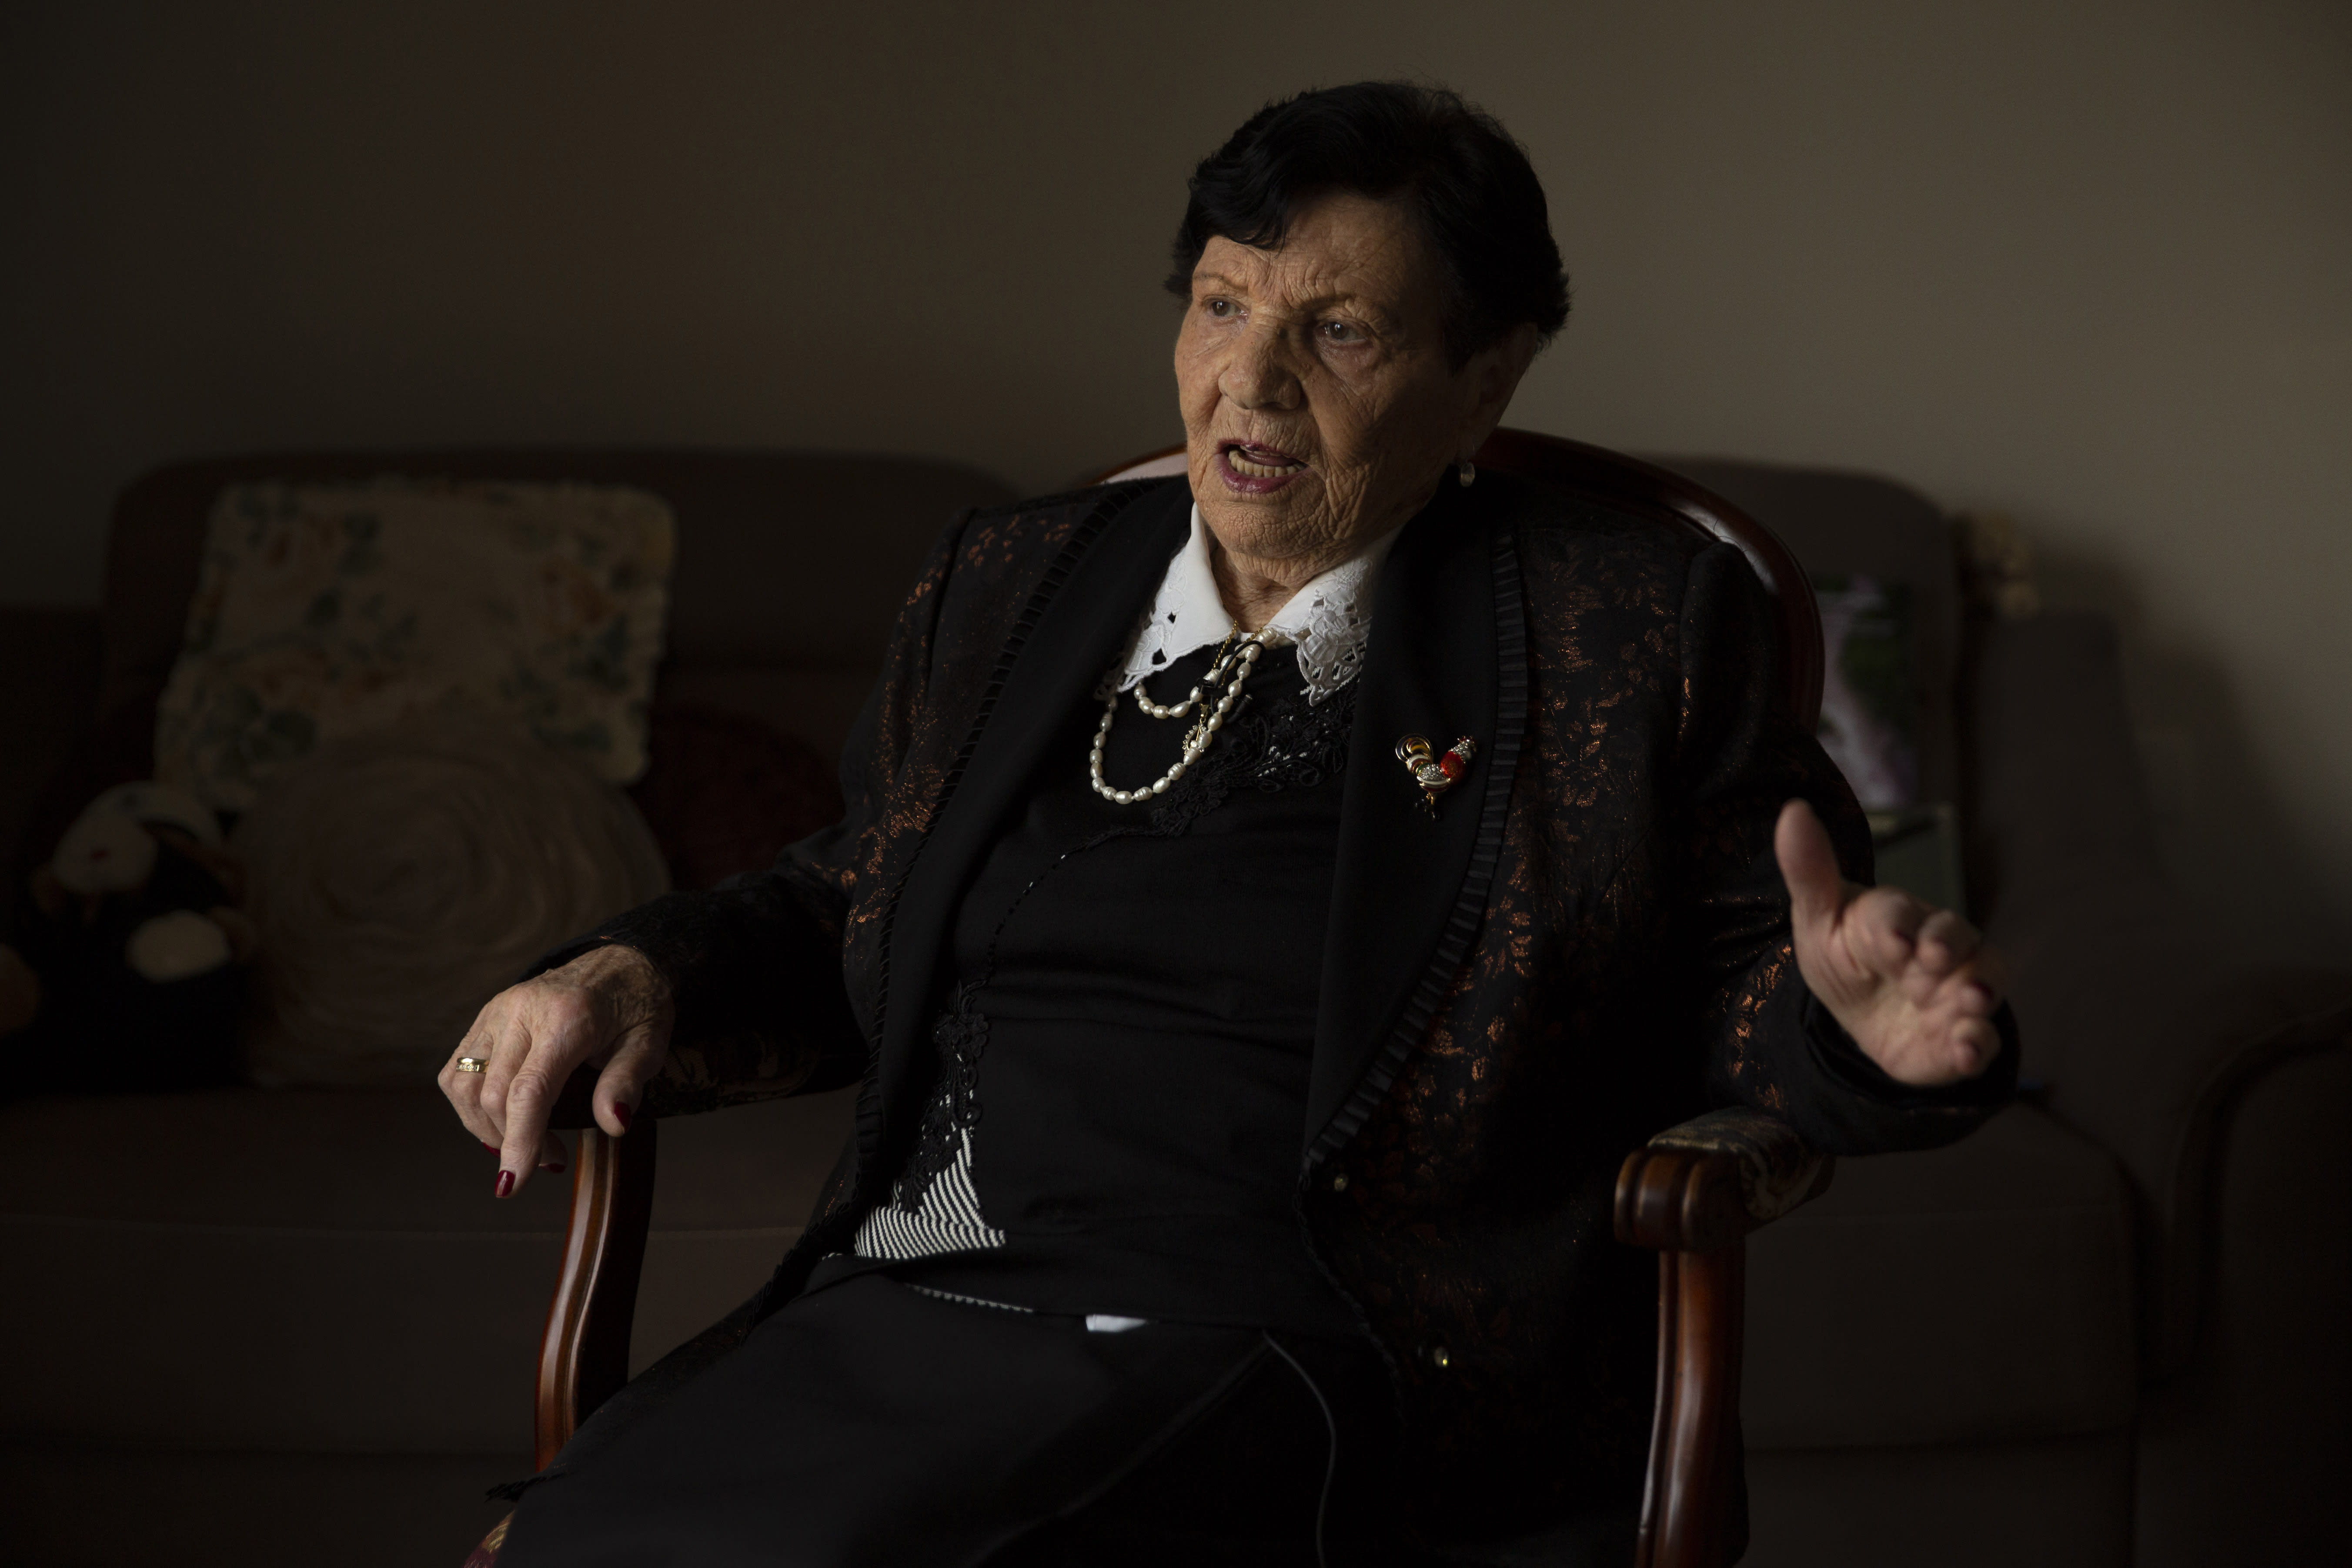 In this Wednesday, Jan. 23, 2019 photo, Holocaust survivor Cipora Feivlovich speaks to The Associated Press at her house in Jerusalem. As the world commemorates the anniversary of the liberation of Auschwitz on International Holocaust Remembrance Day, death camp survivor Feivlovich marks her own personal milestone as she turns 92. She's spent her most recent birthdays recounting to audiences in Israel and Germany her harrowing experiences in the infamous camp, where her parents, brother and best friends all perished. (AP Photo/Sebastian Scheiner)